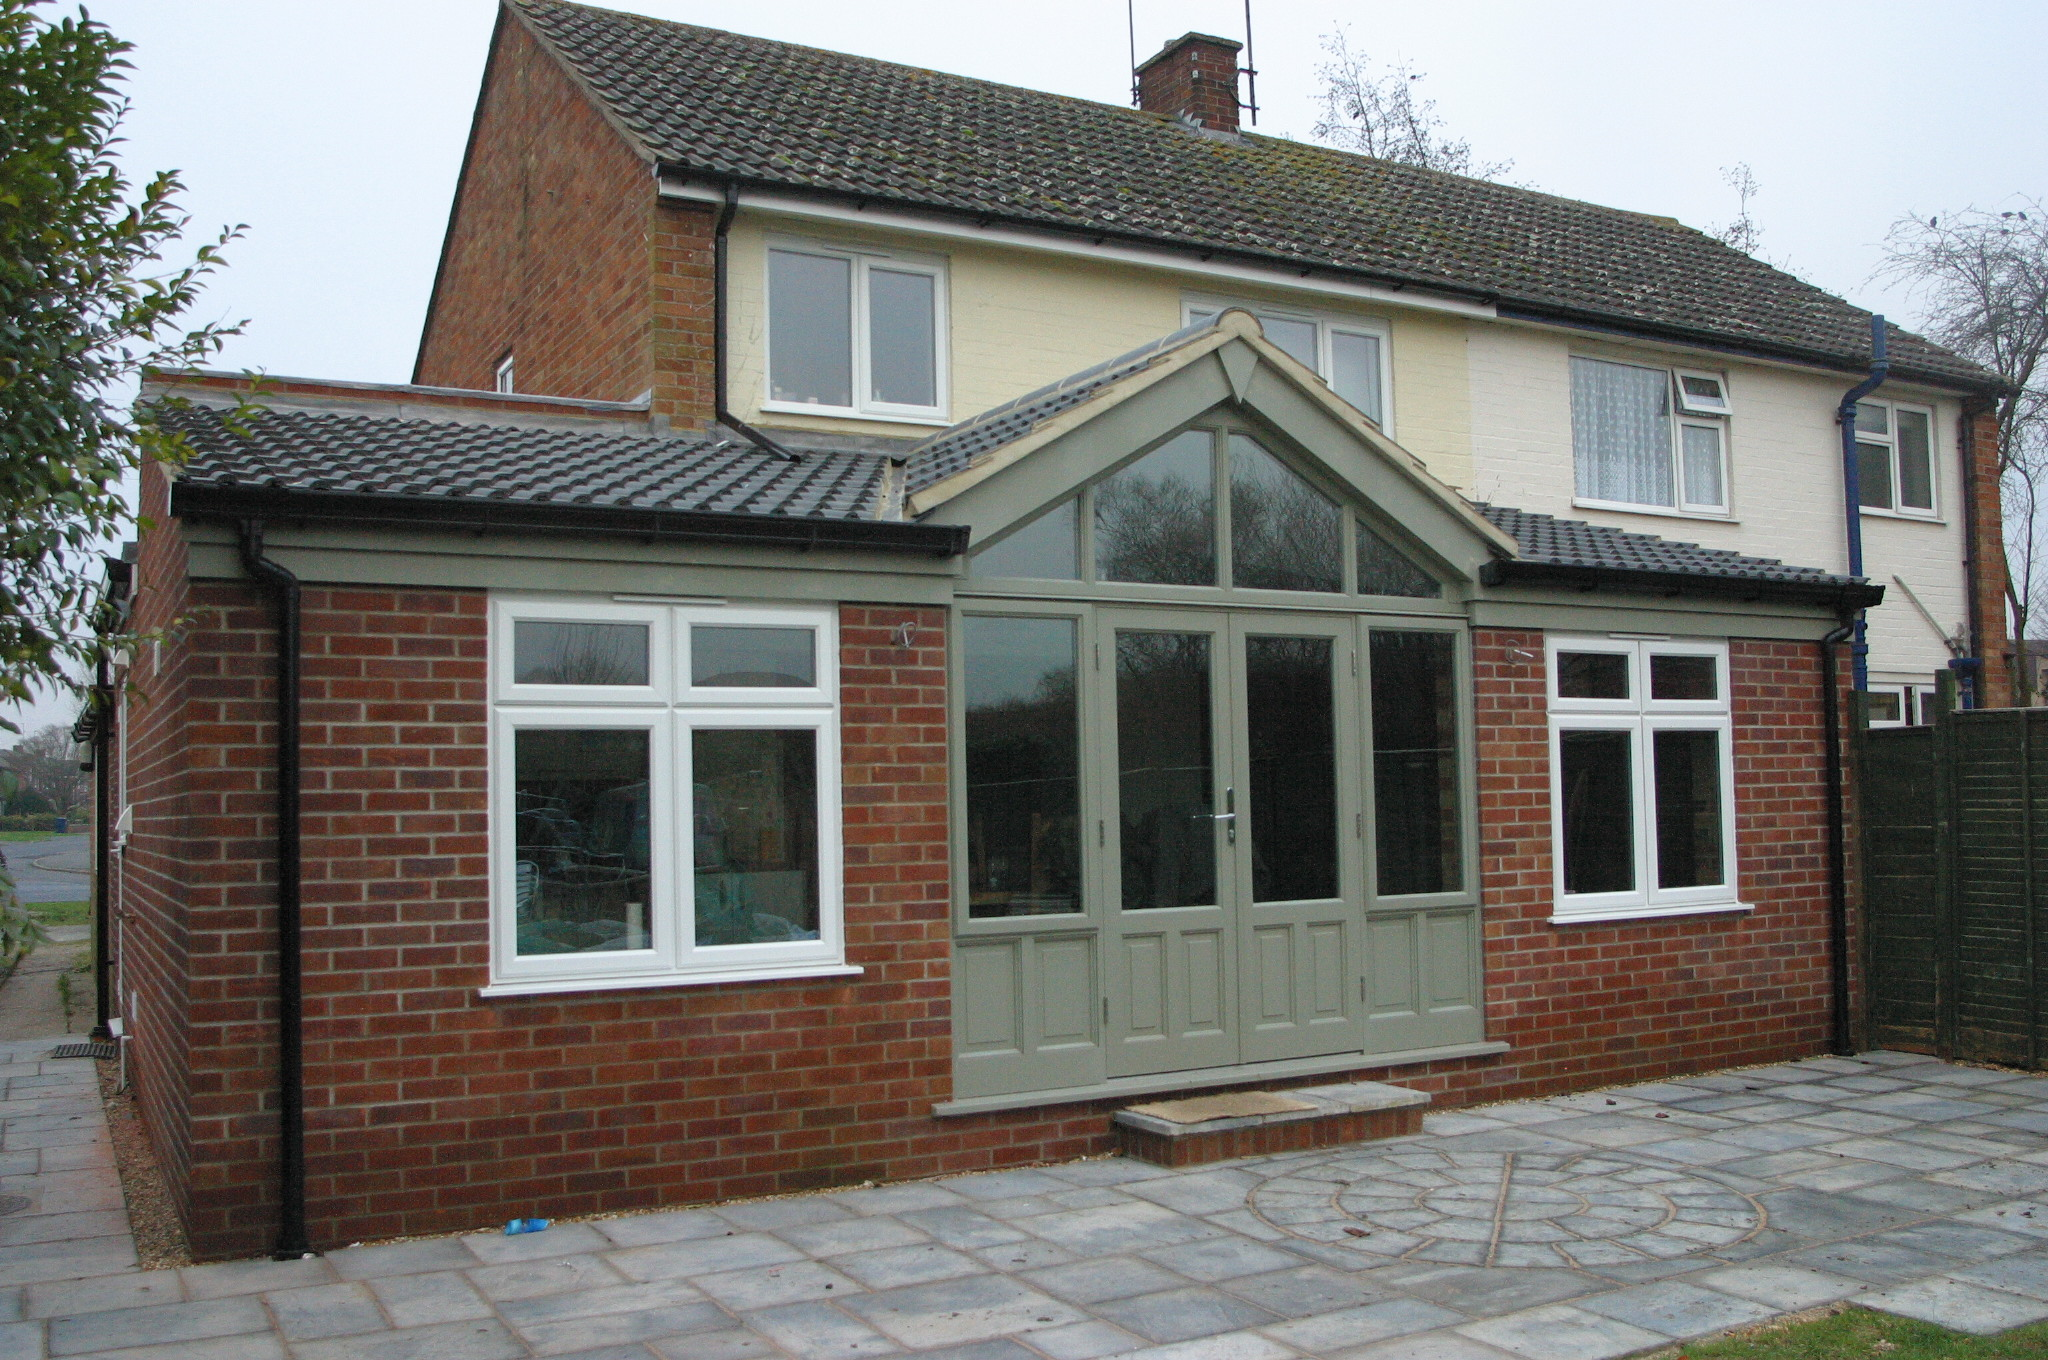 Kitchen extensions heritage orangeries for Garden room designs uk